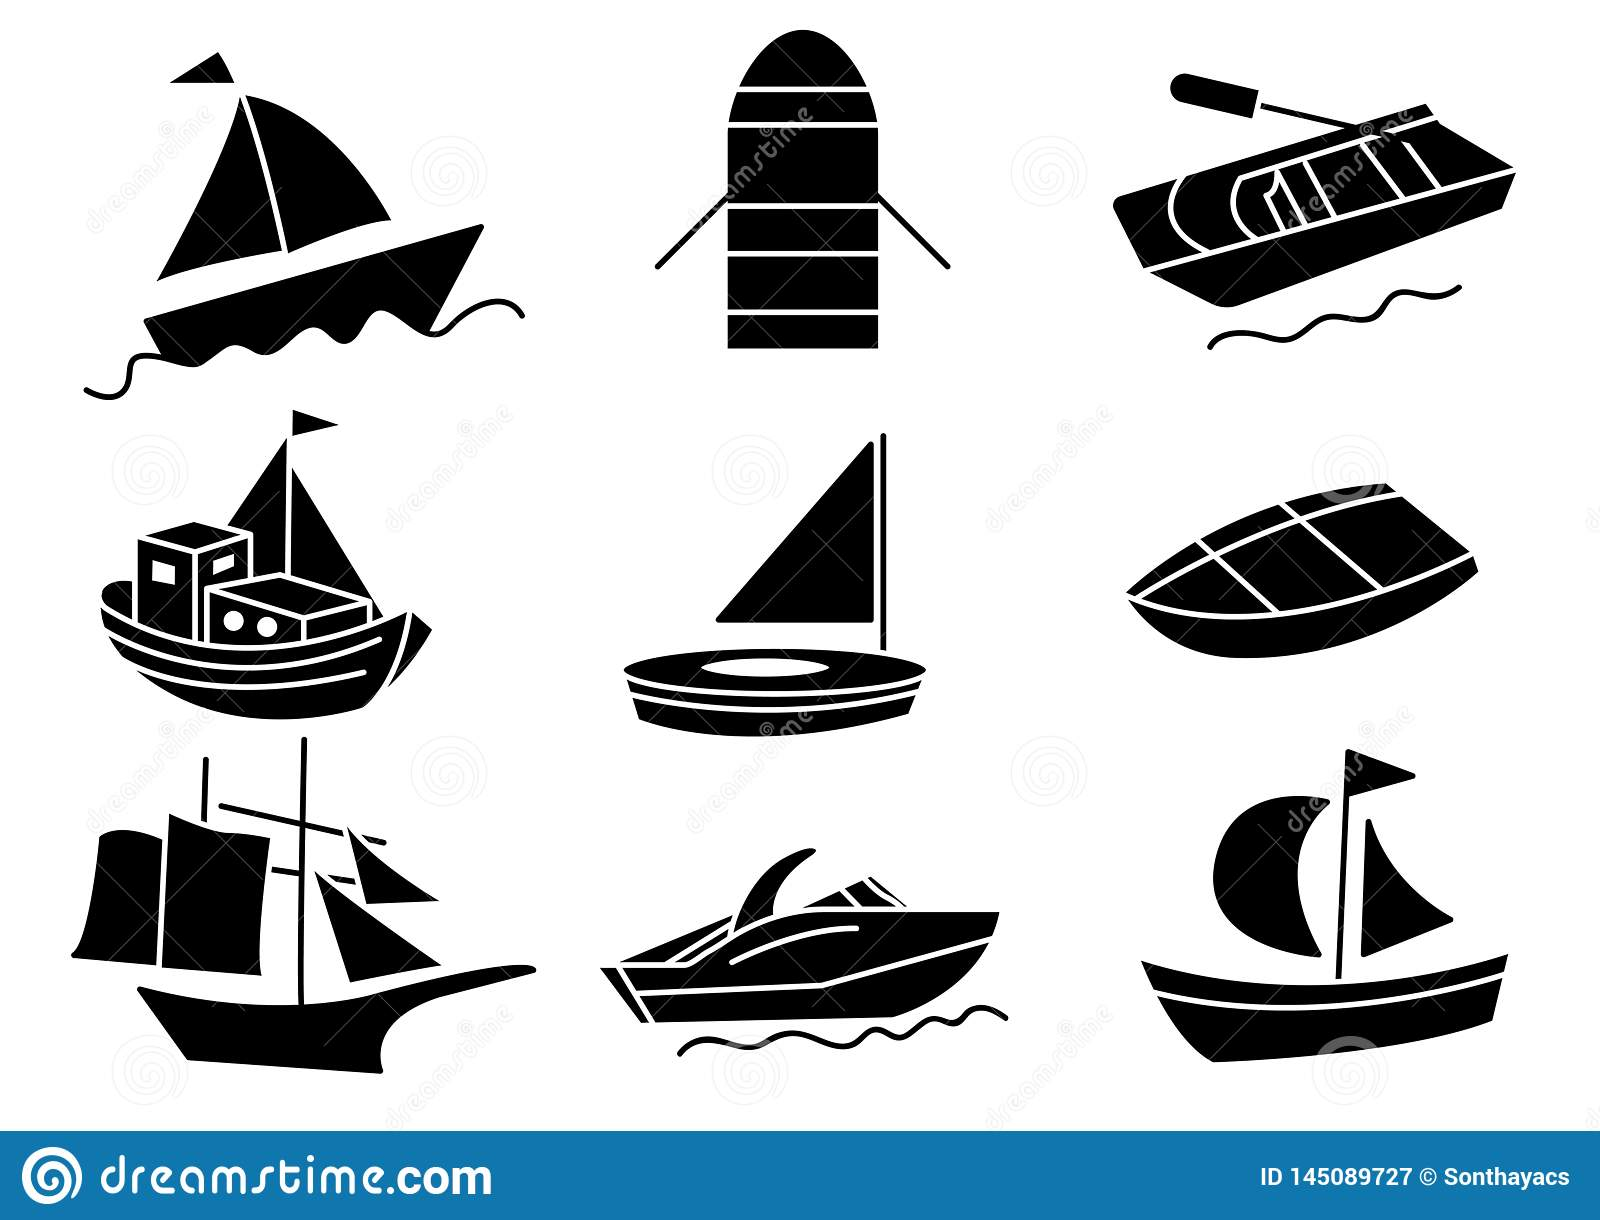 Solid icons Boat set